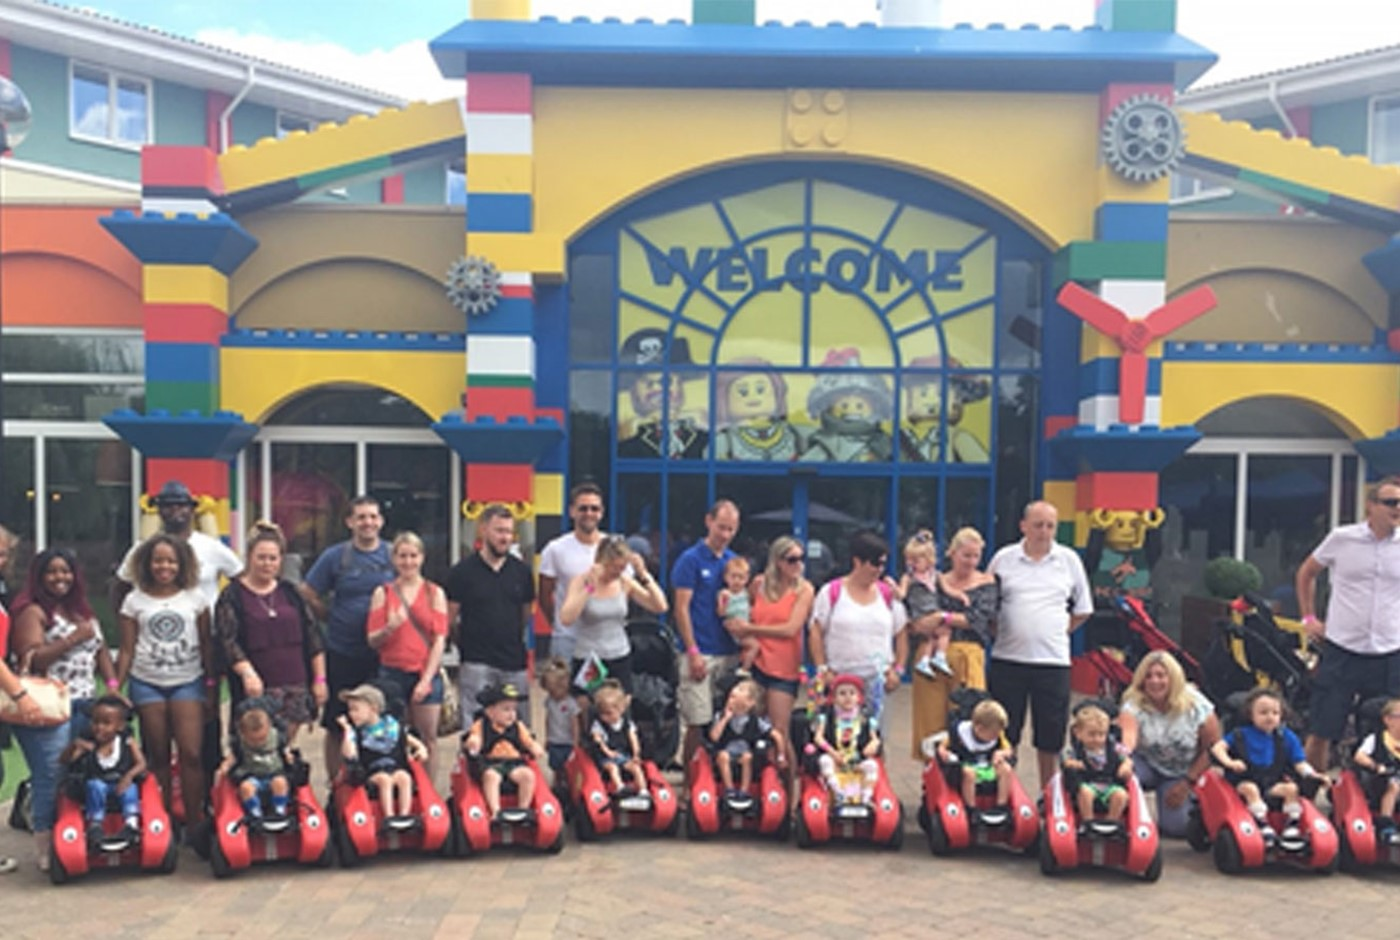 Whizzybugs help under 5's to explore Legoland